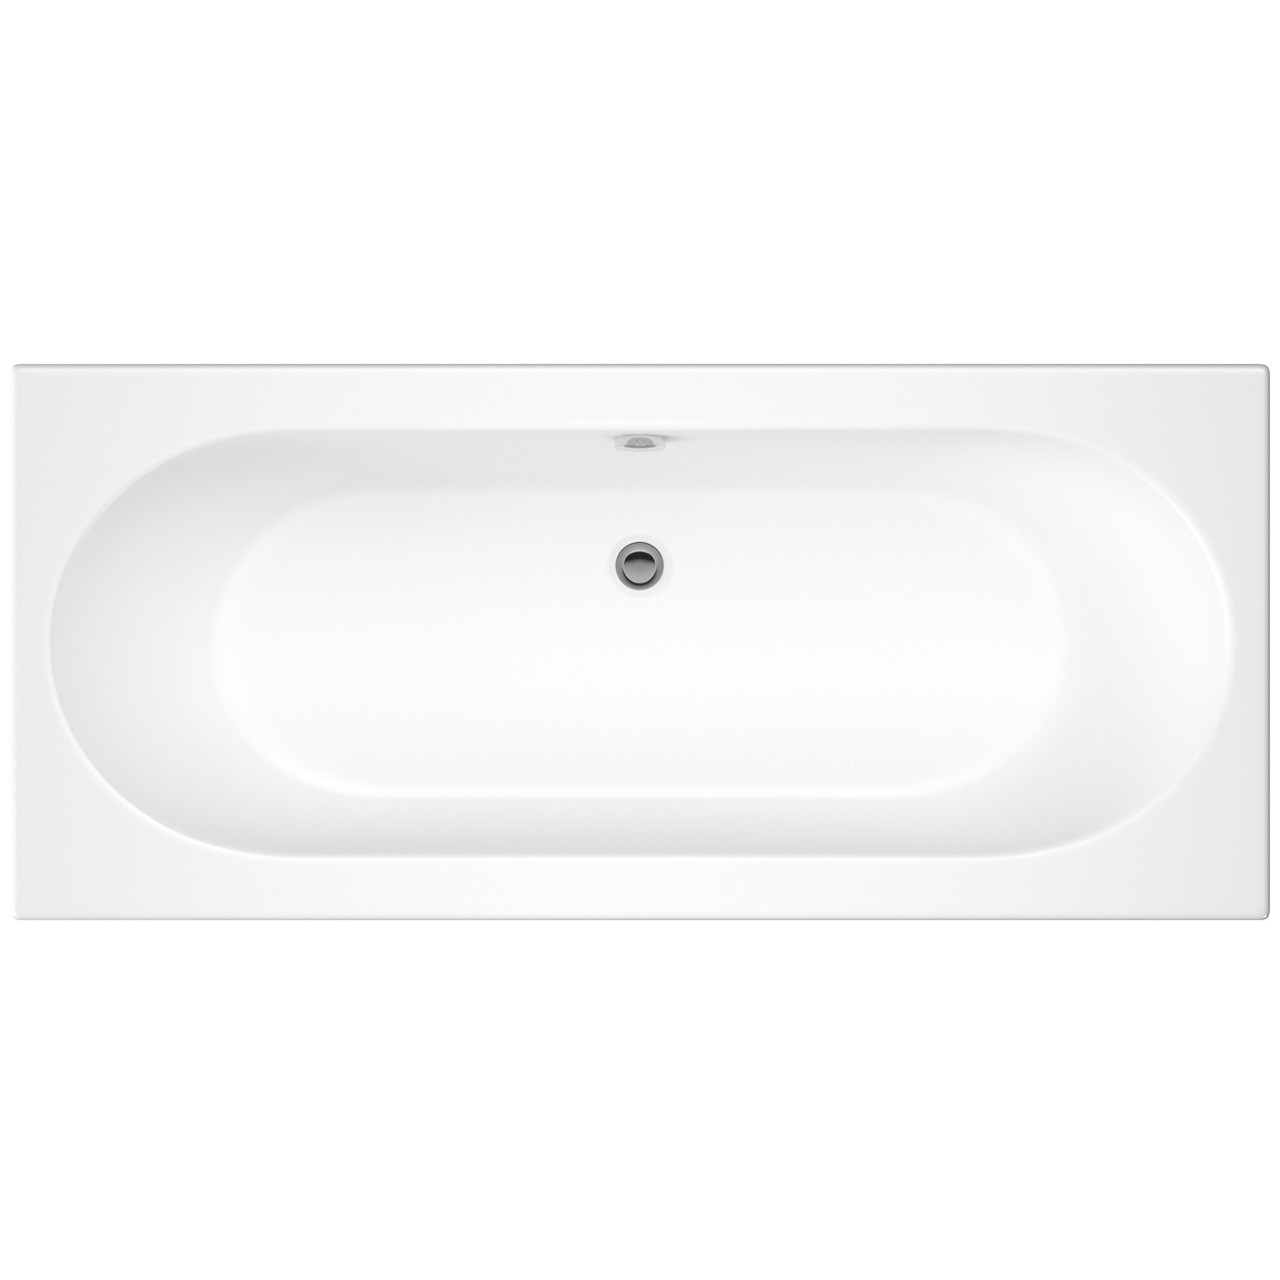 Premier Round Double Ended Bath 1700mm x 750mm - BDE010